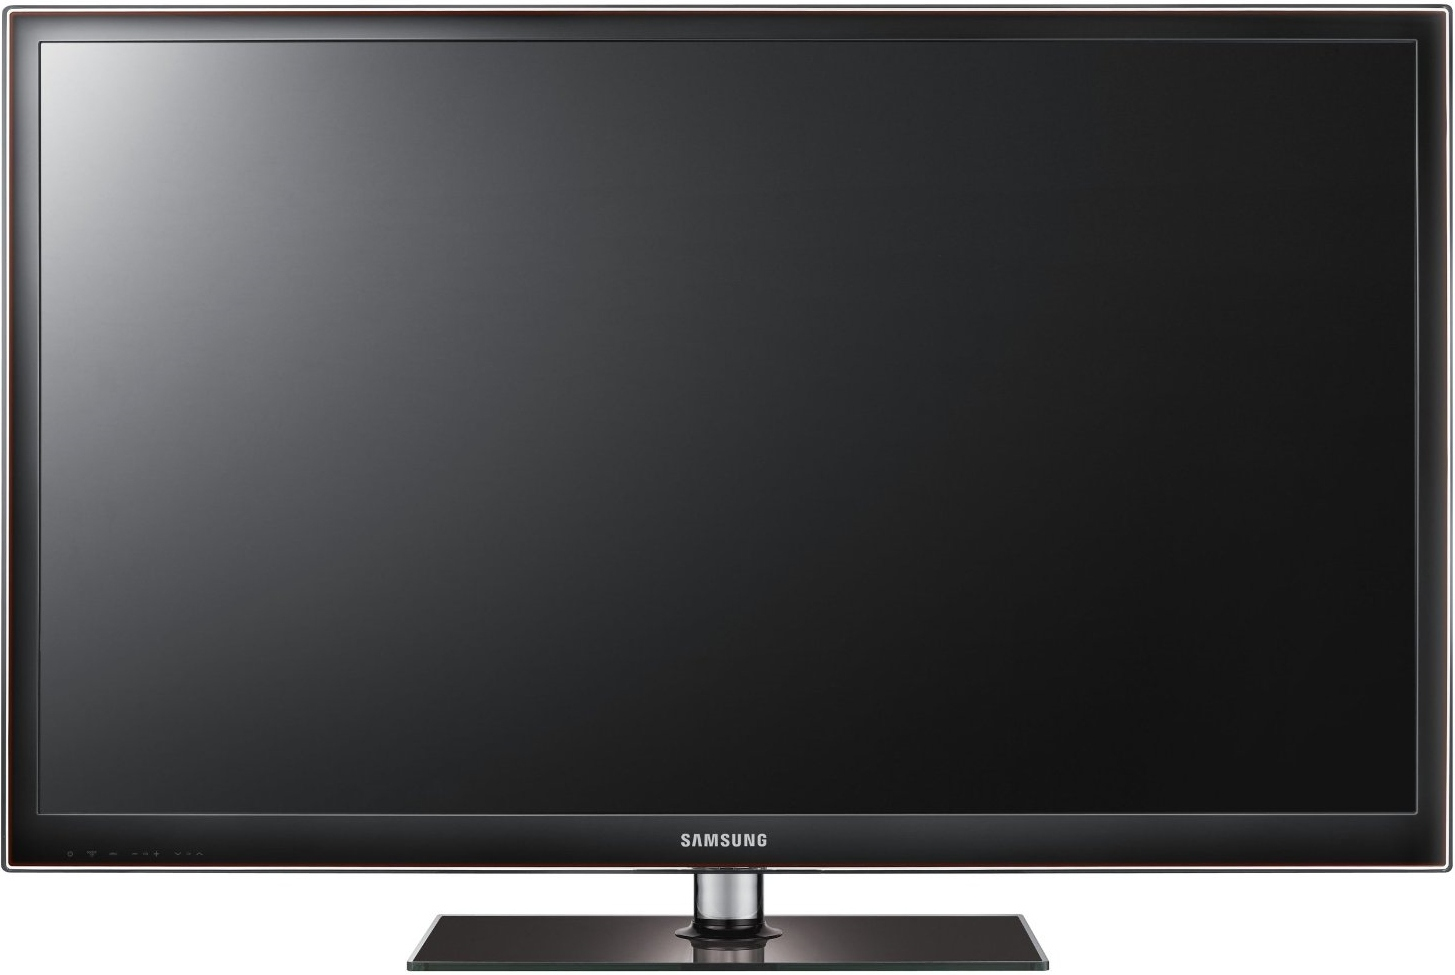 Flat Screen Television Clipart Clipart Suggest